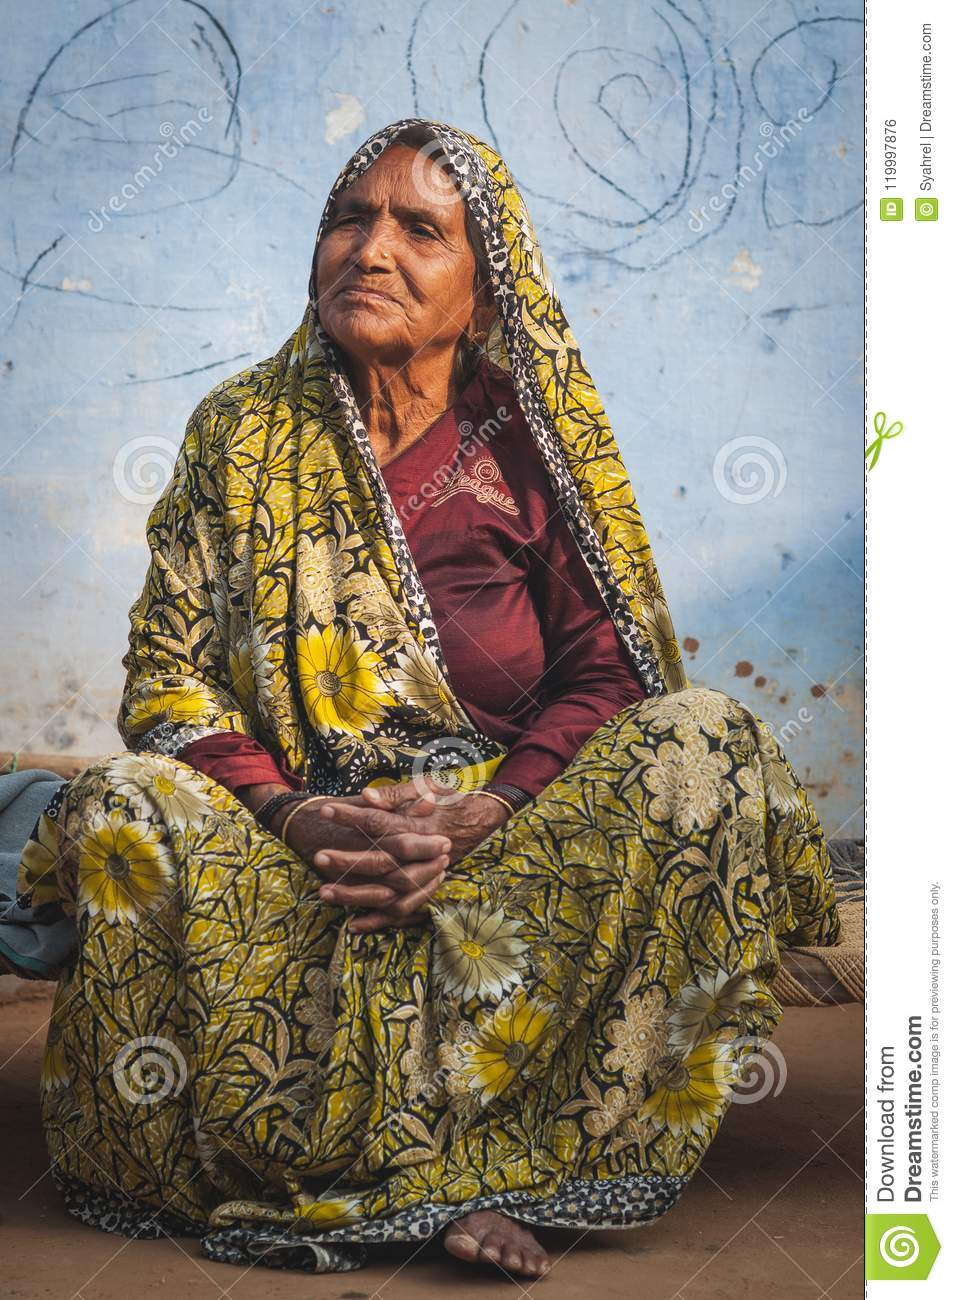 Indian elder in tradition clothing sitting down